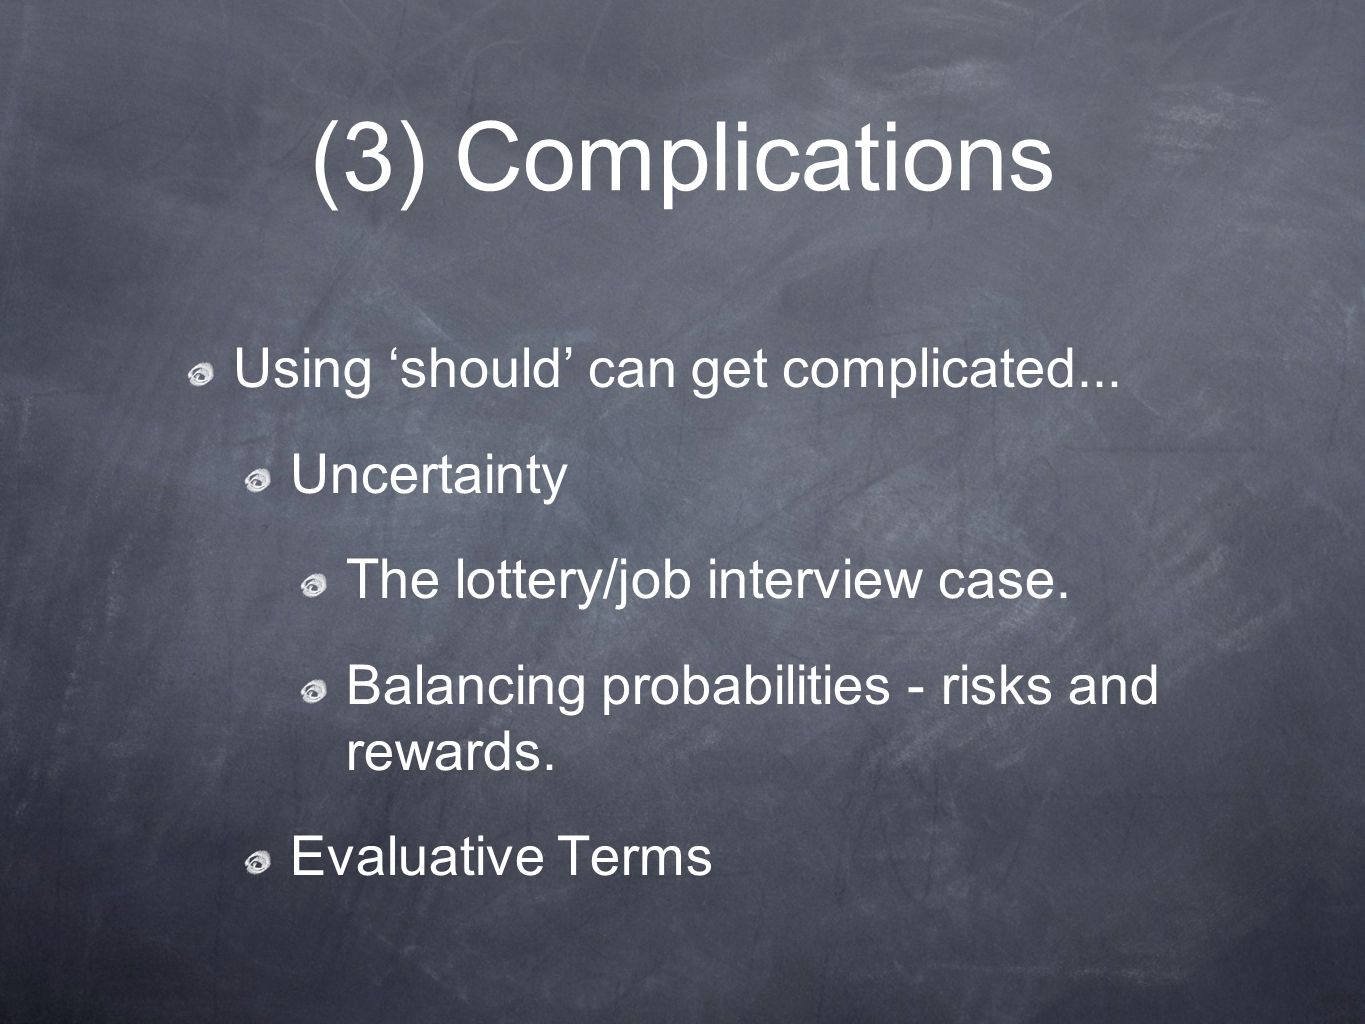 (3) Complications Using 'should' can get complicated...